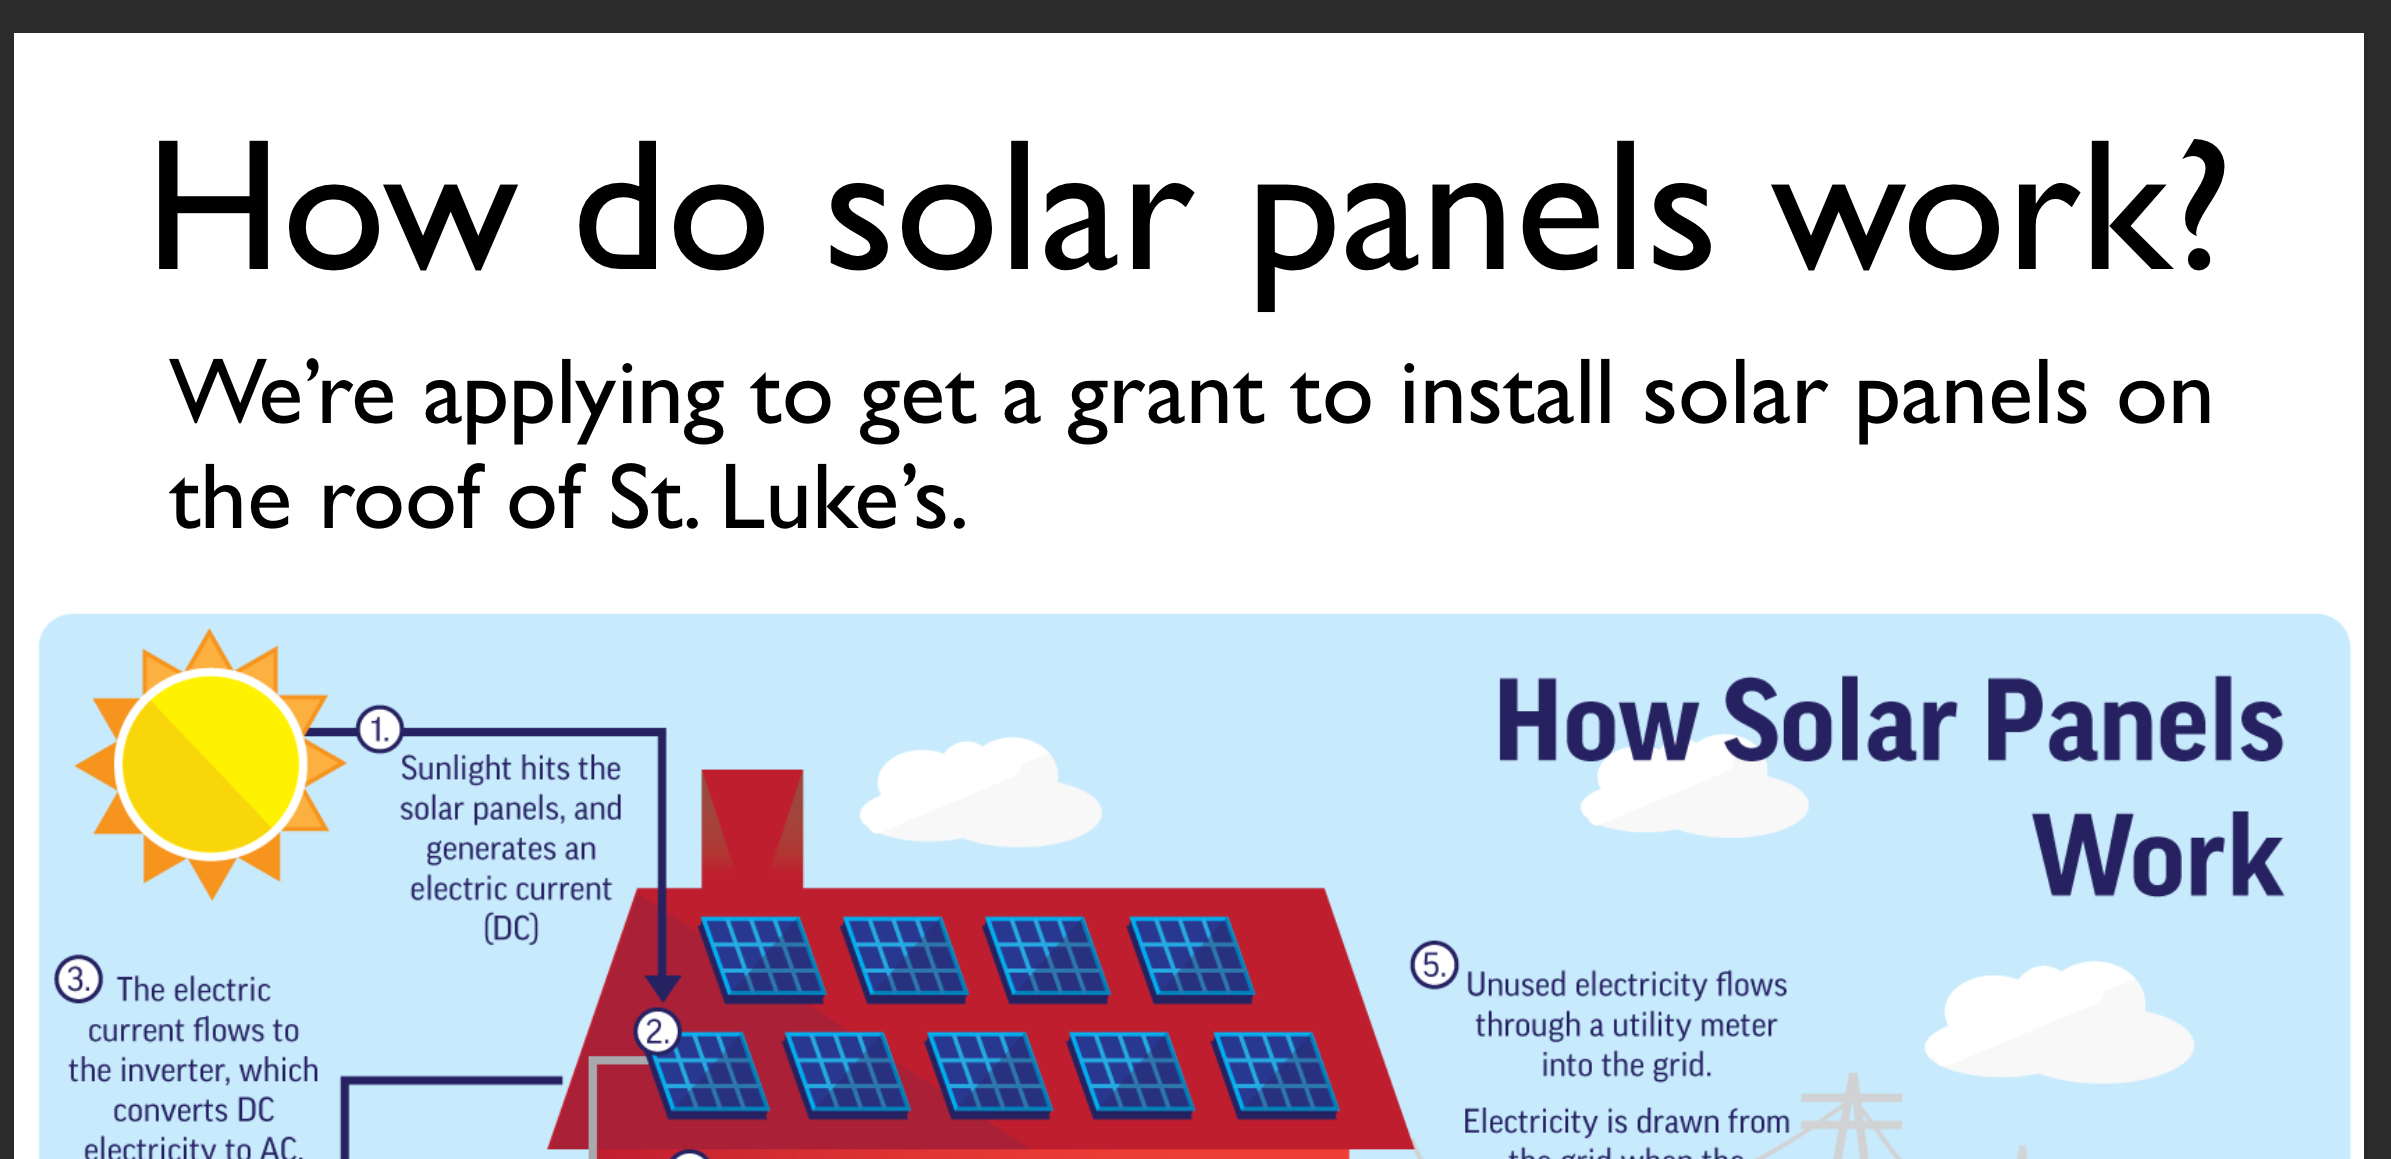 We are applying for a grant so that we can install solar panels.